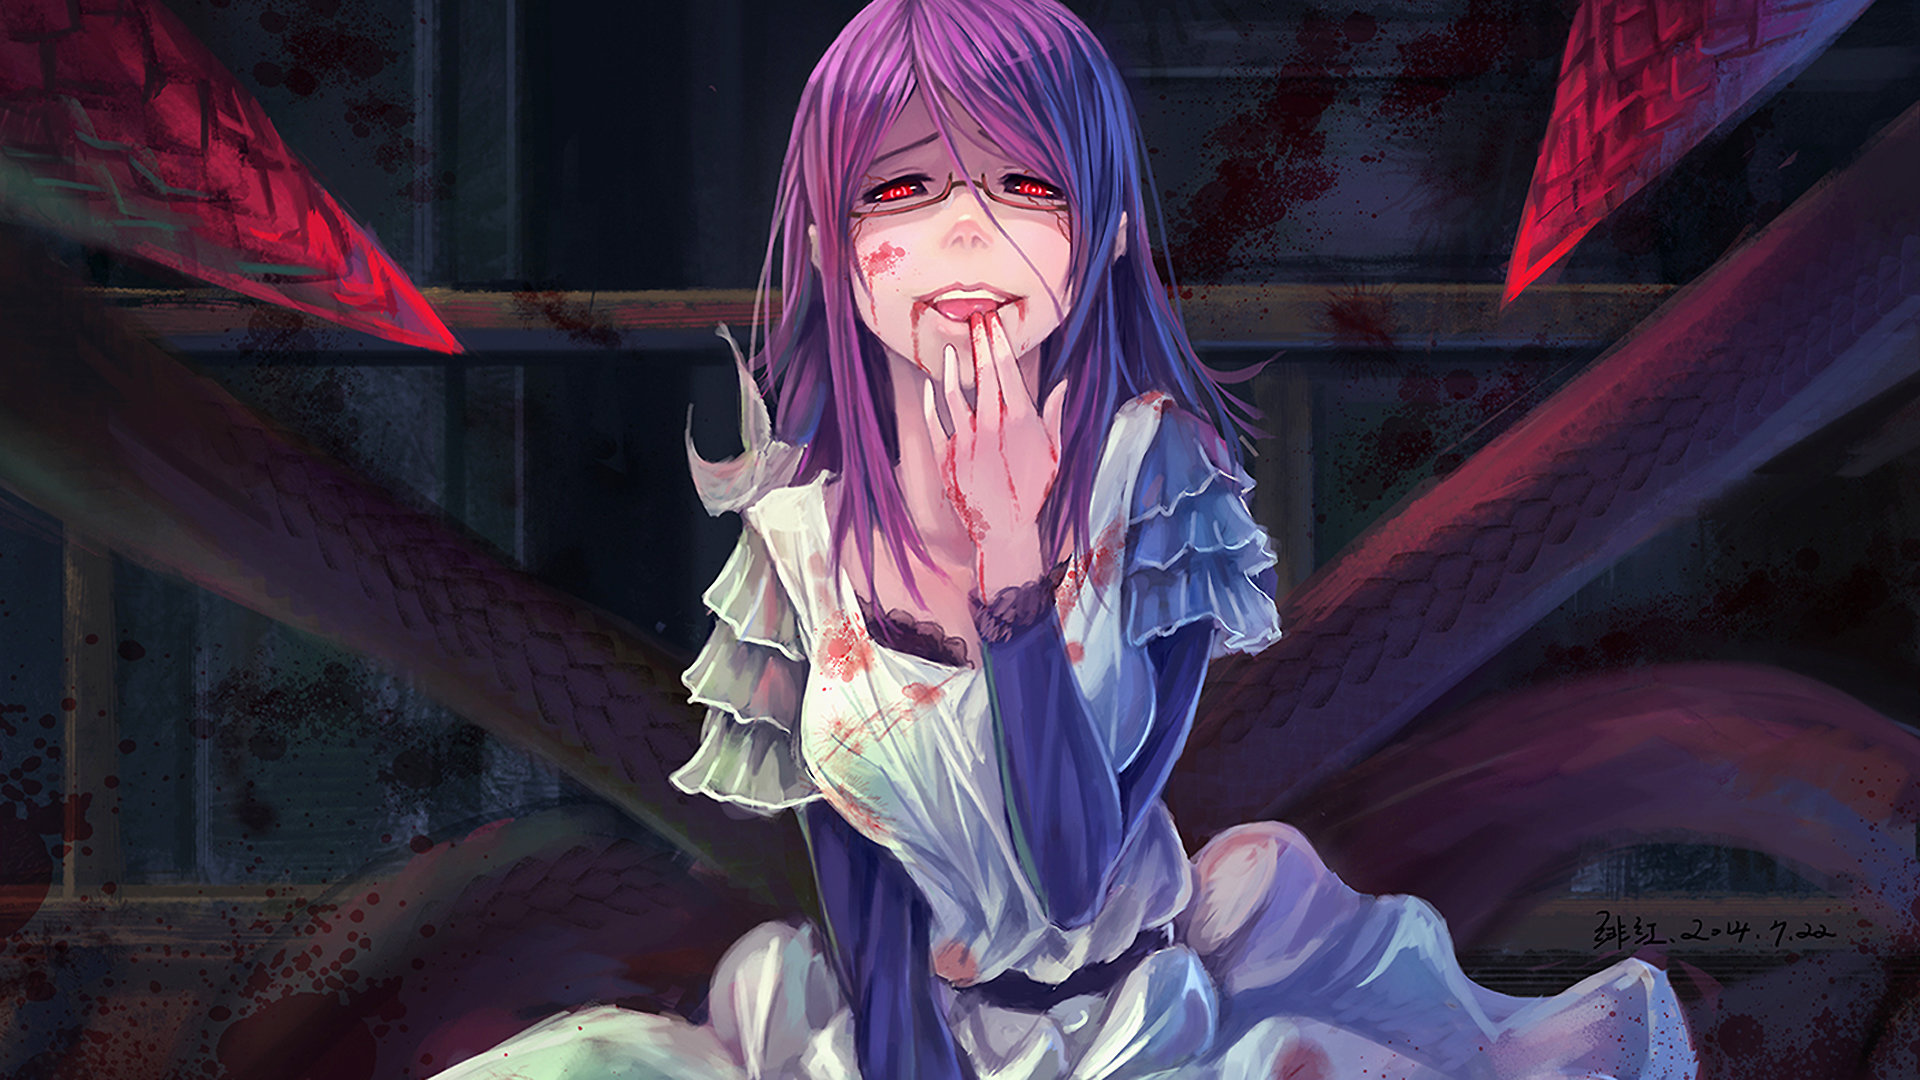 Download hd 1080p Rize Kamishiro PC background ID:150325 for free